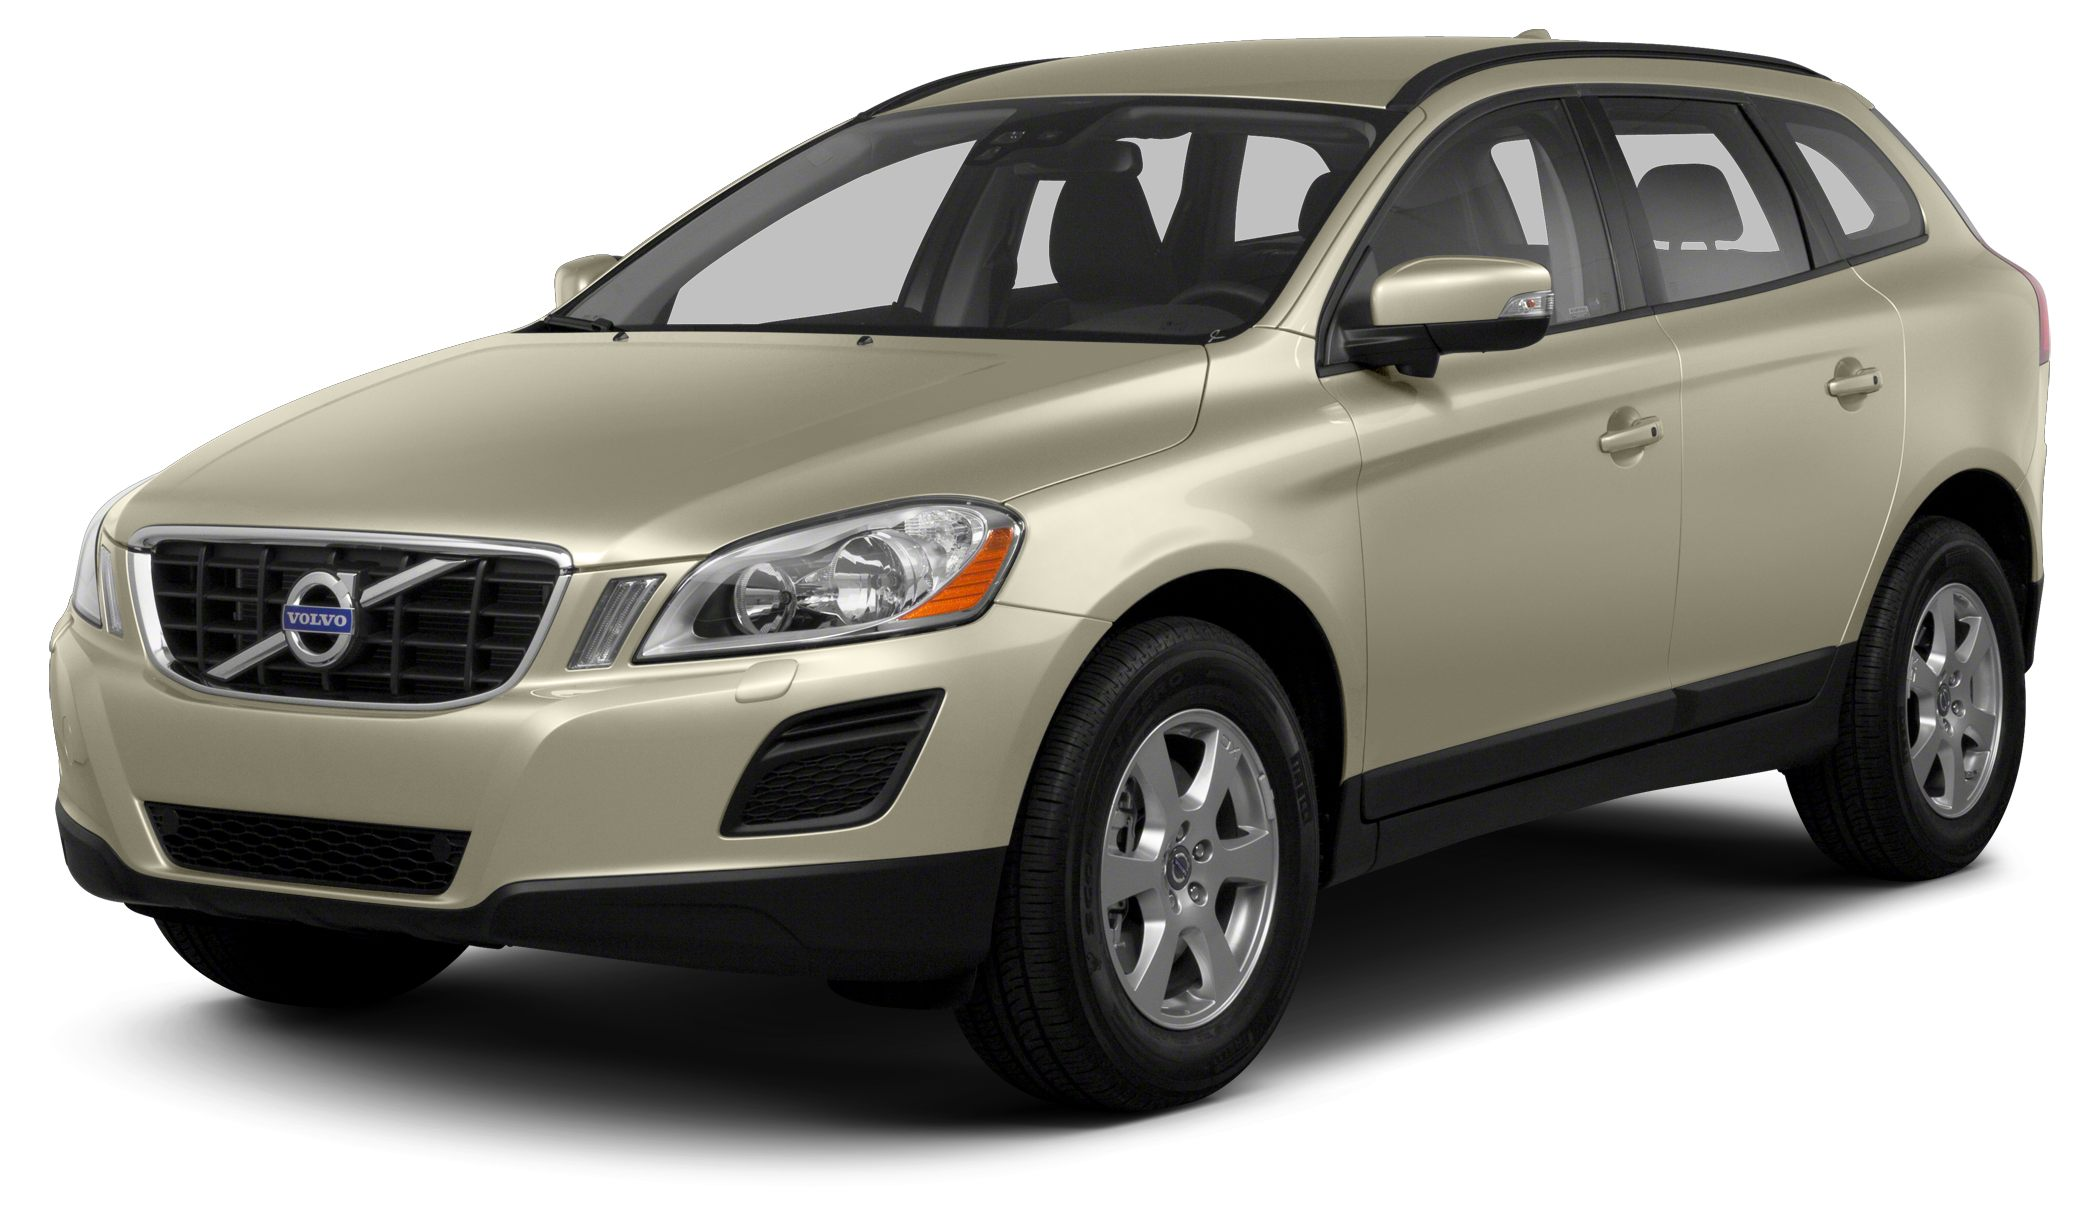 2013 Volvo XC60 T6 Miles 56959Color Seashell Metallic Stock LH2119A VIN YV4902DZ0D2380038